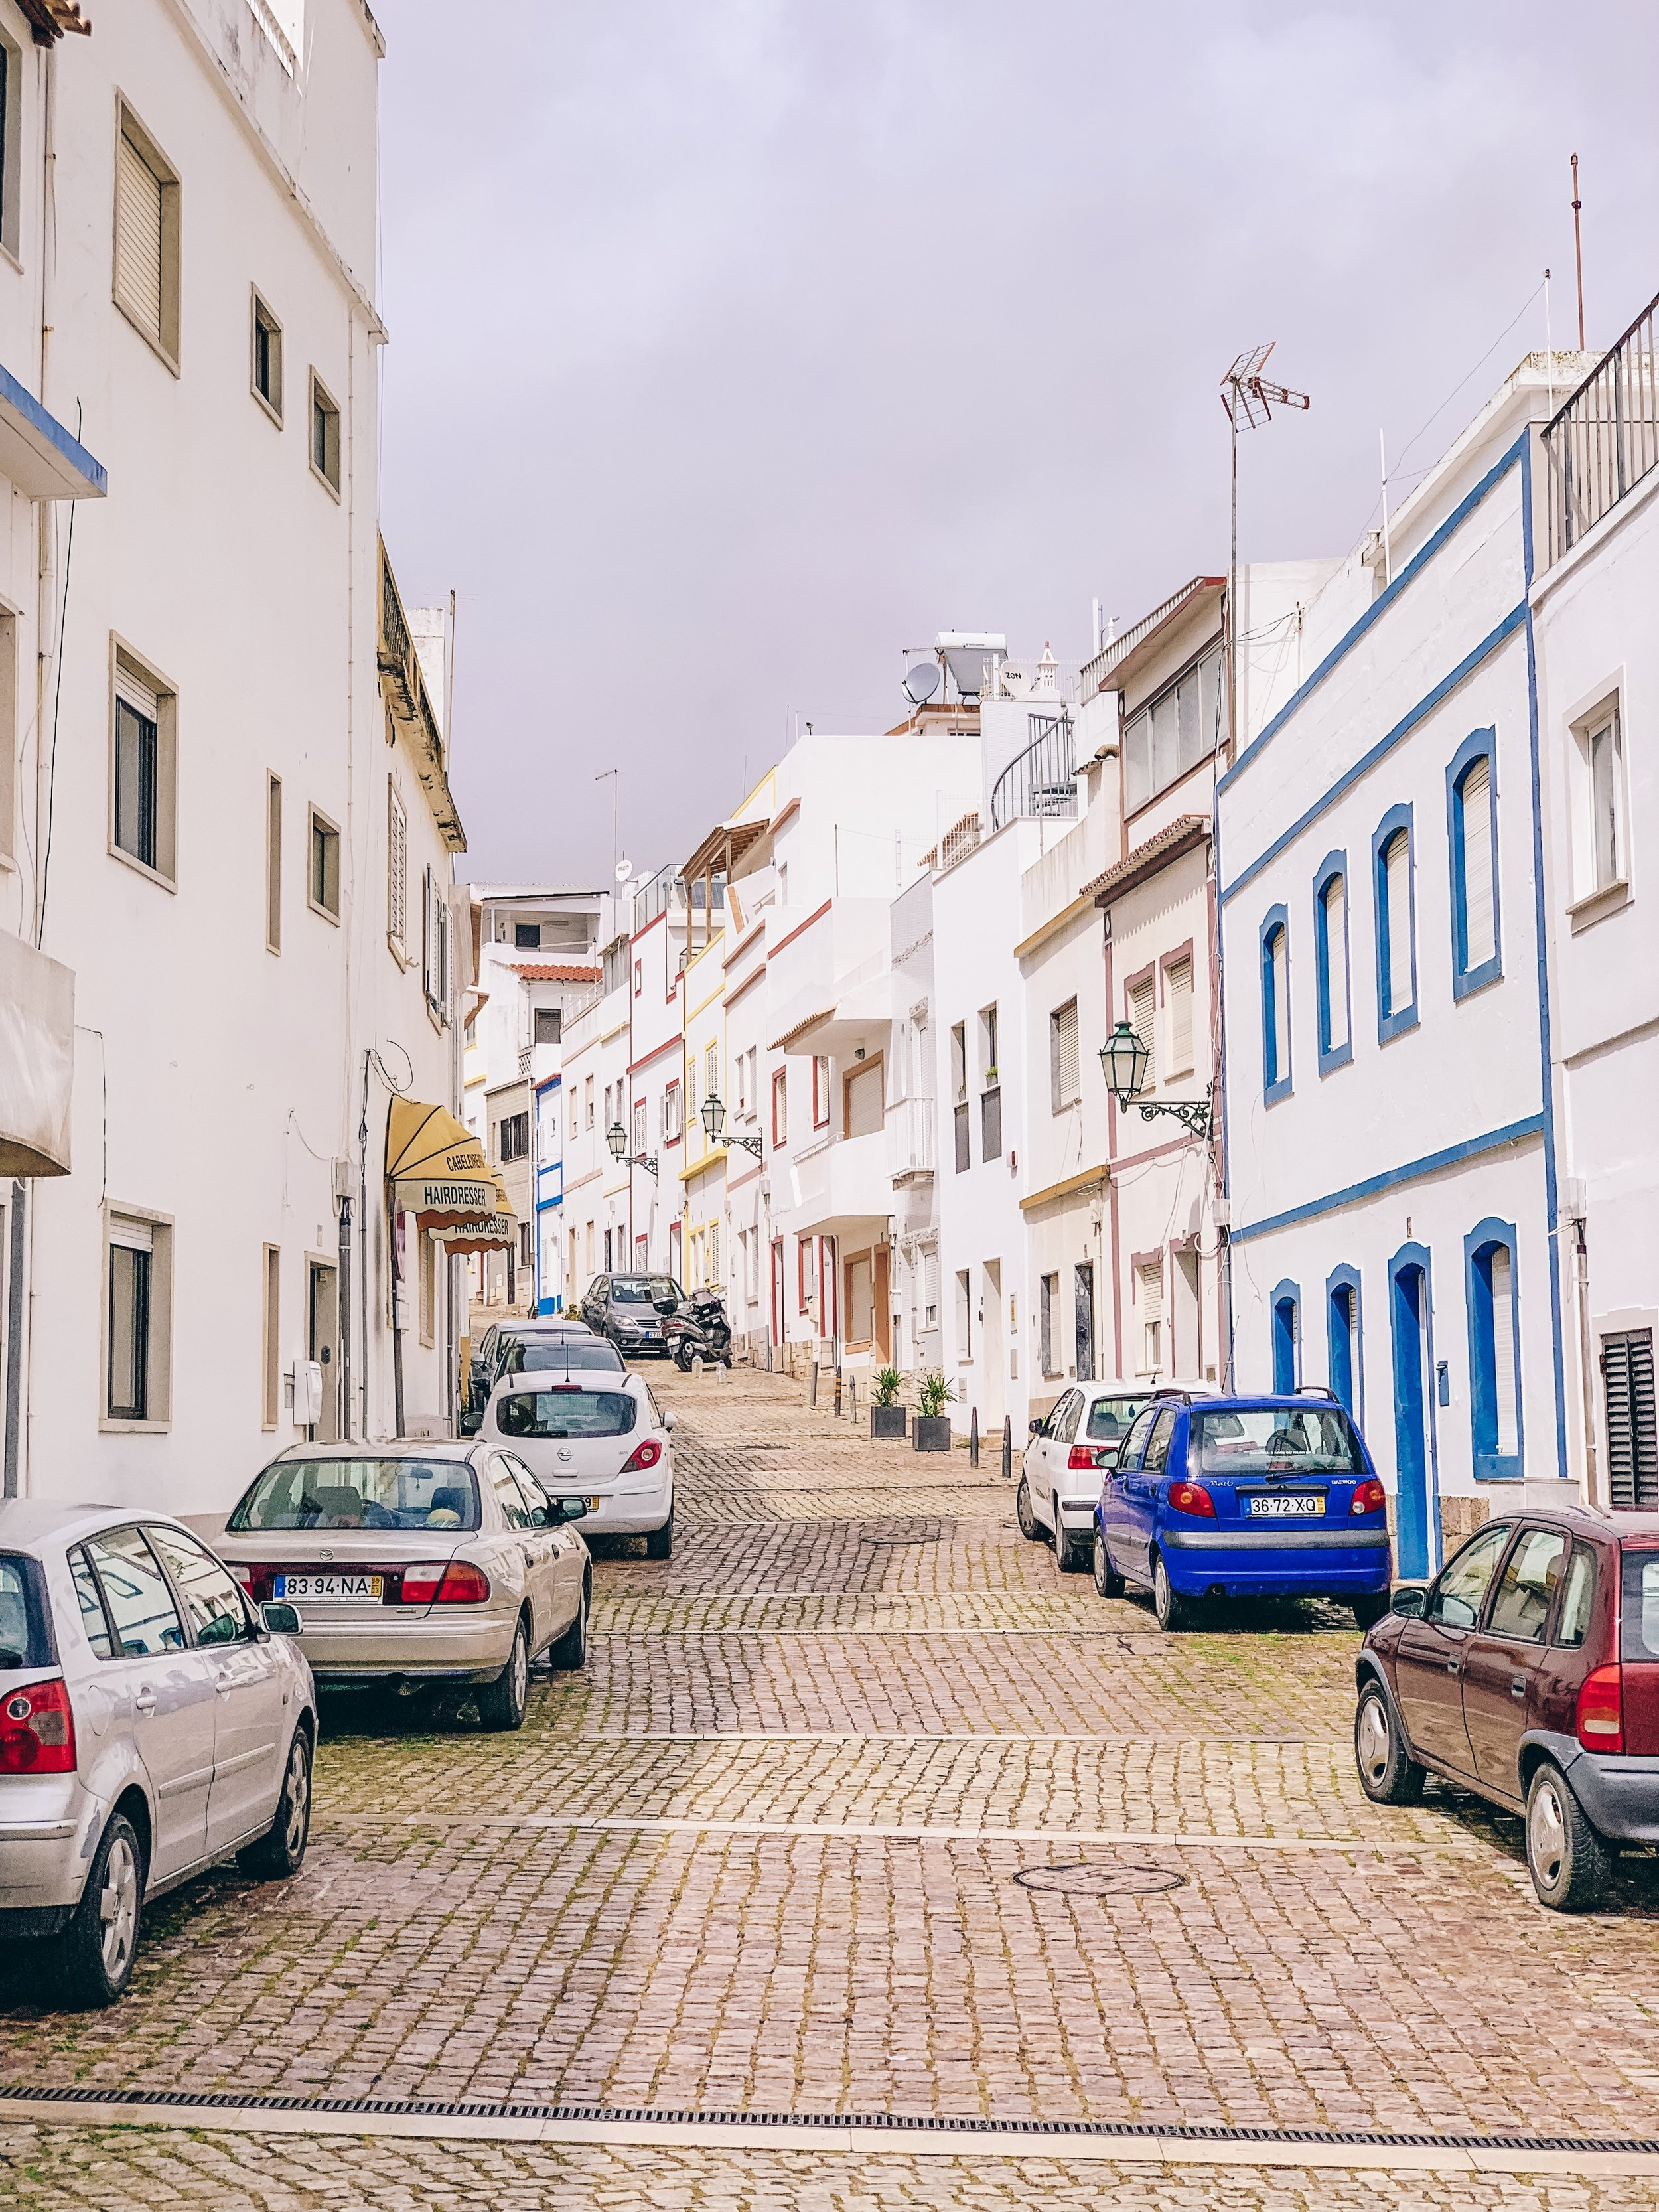 The streets of Albufeira